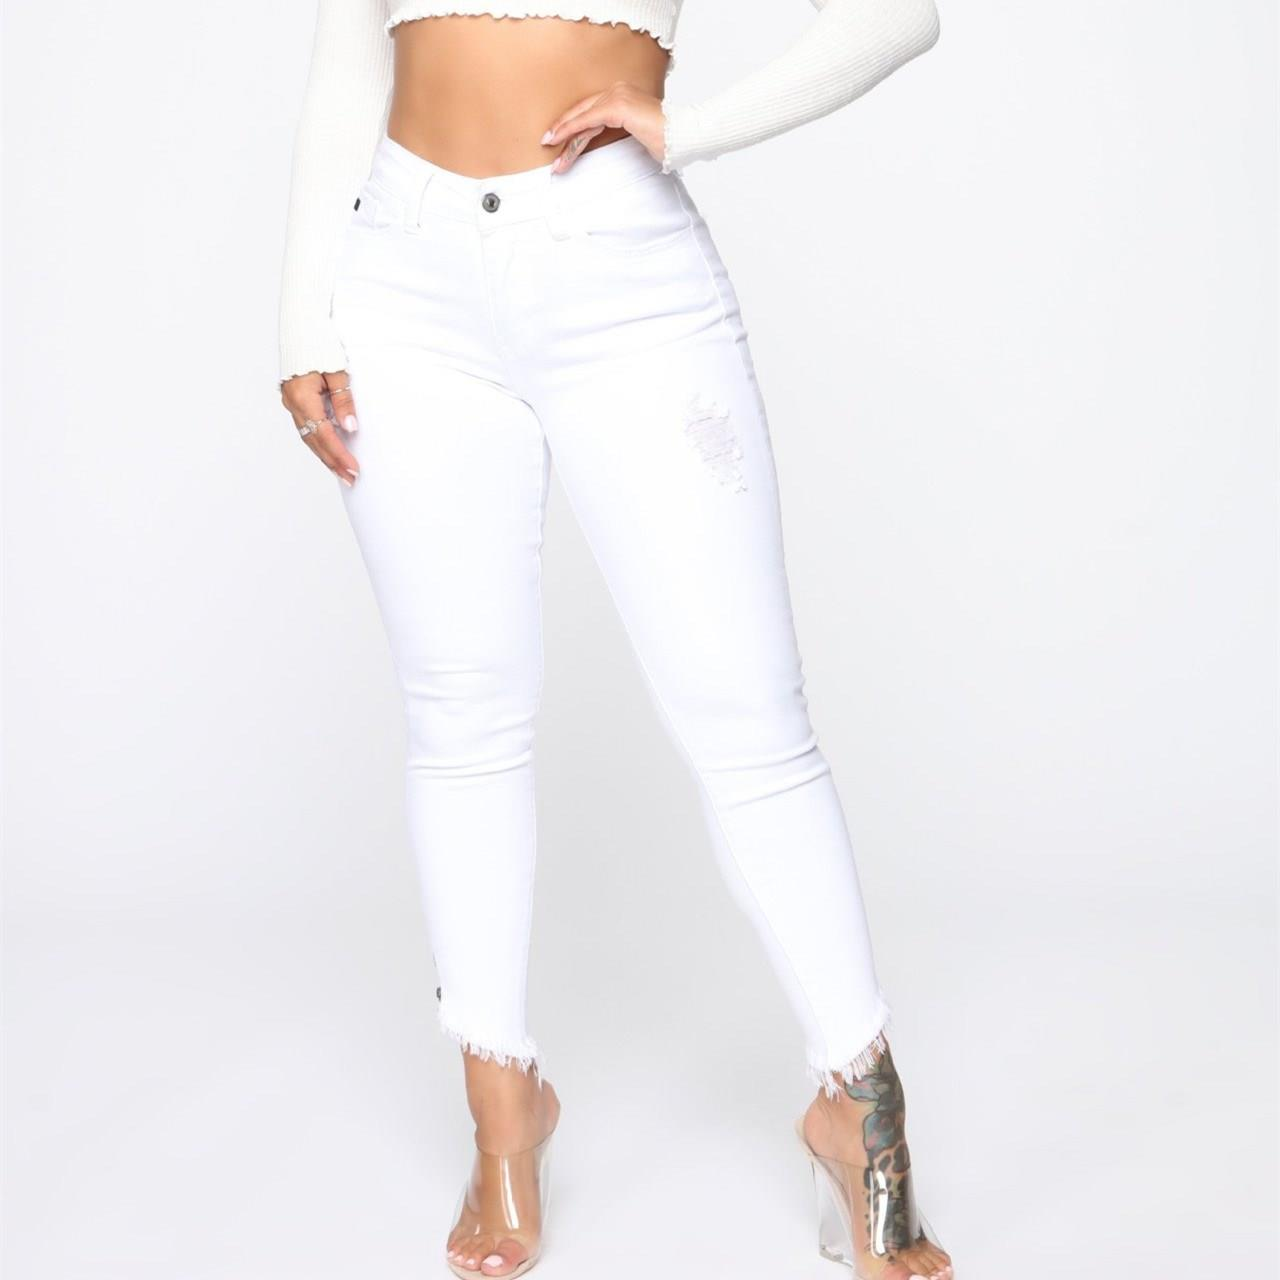 Women White Ripped Hole Jeans Skinny Casual Bodycon High Waist Denim Pants Female Pencil Trousers Solid Pants